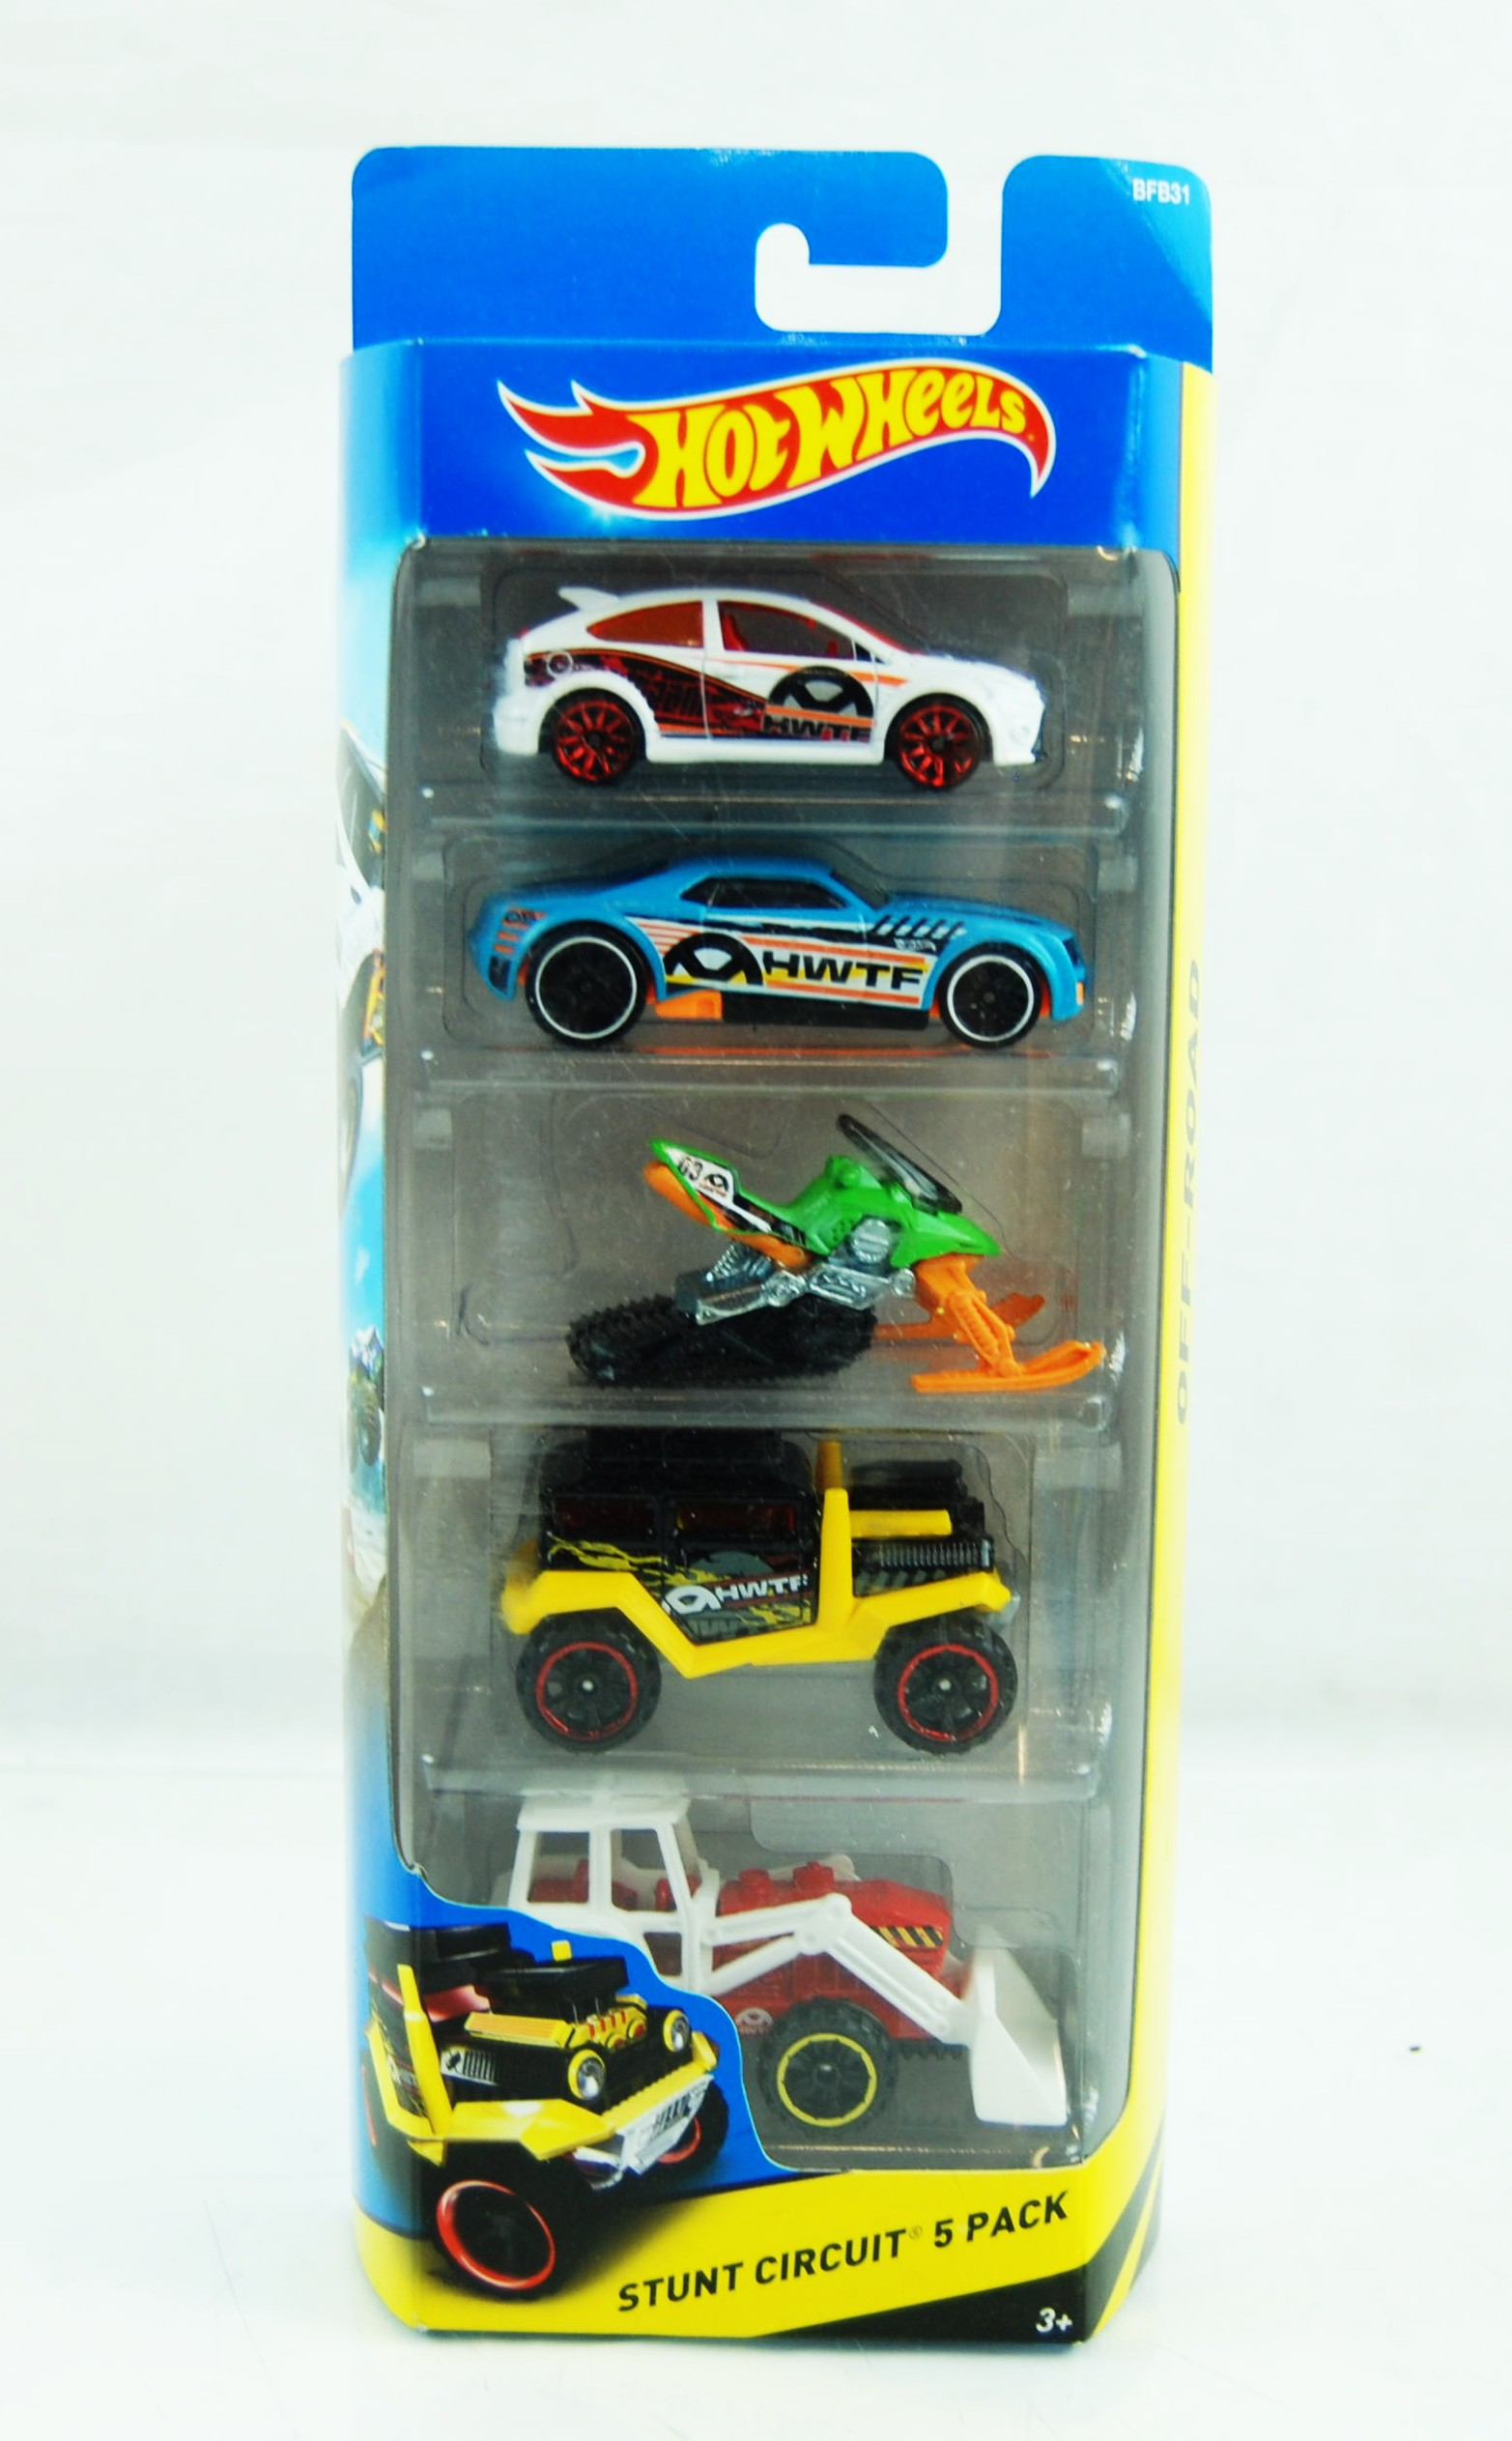 hot wheels stunt circuit 5 pack ebay. Black Bedroom Furniture Sets. Home Design Ideas